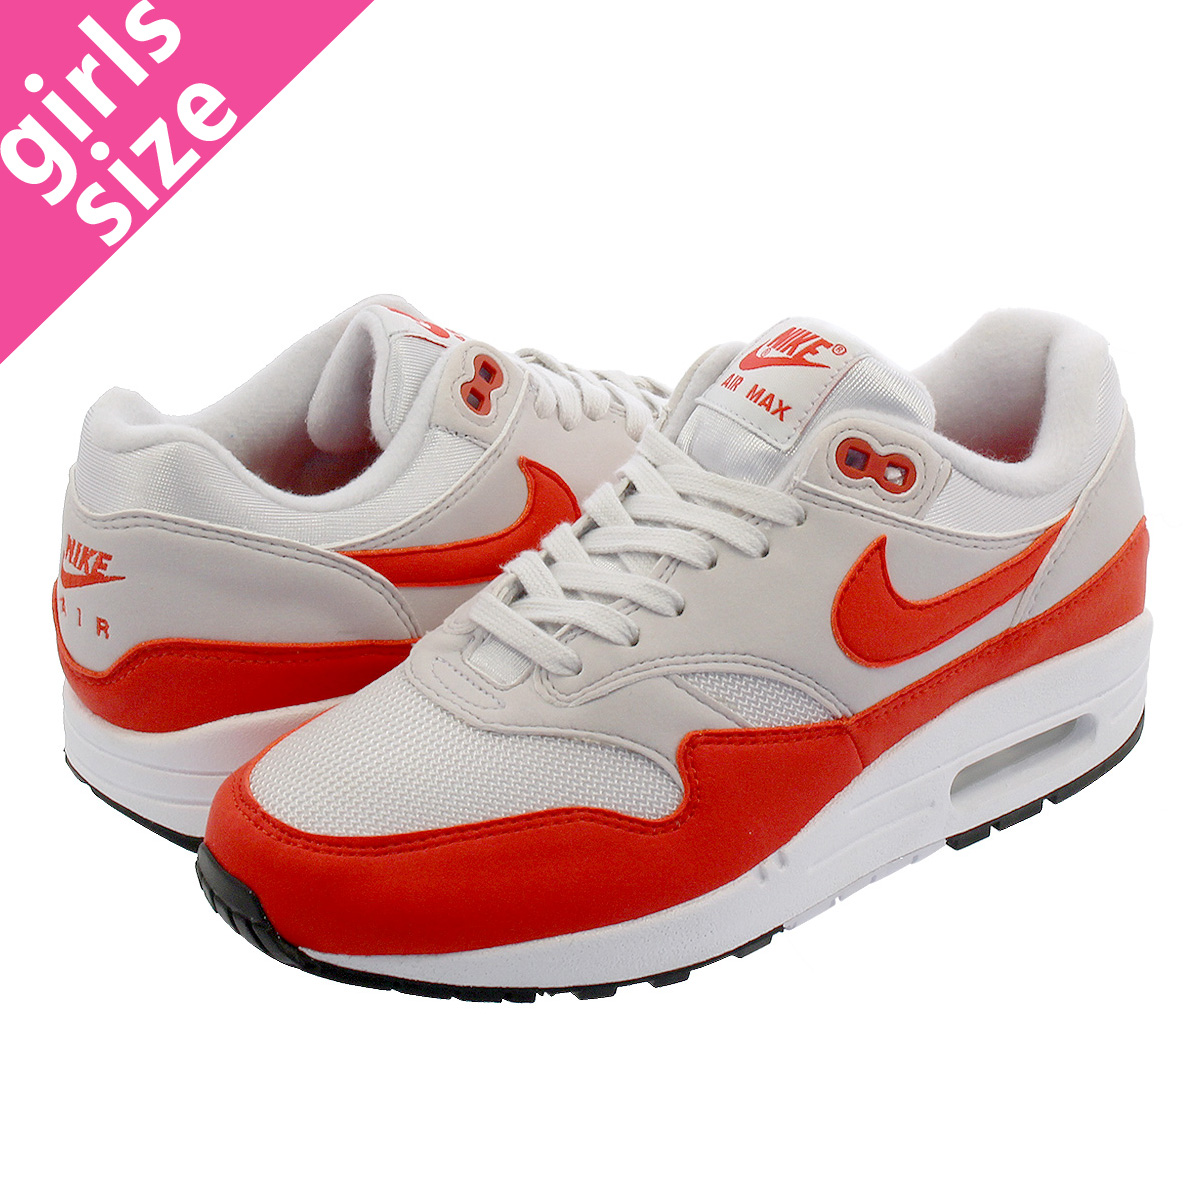 Nike to Release the Air Max 1 'Habanero Red' as a Women's